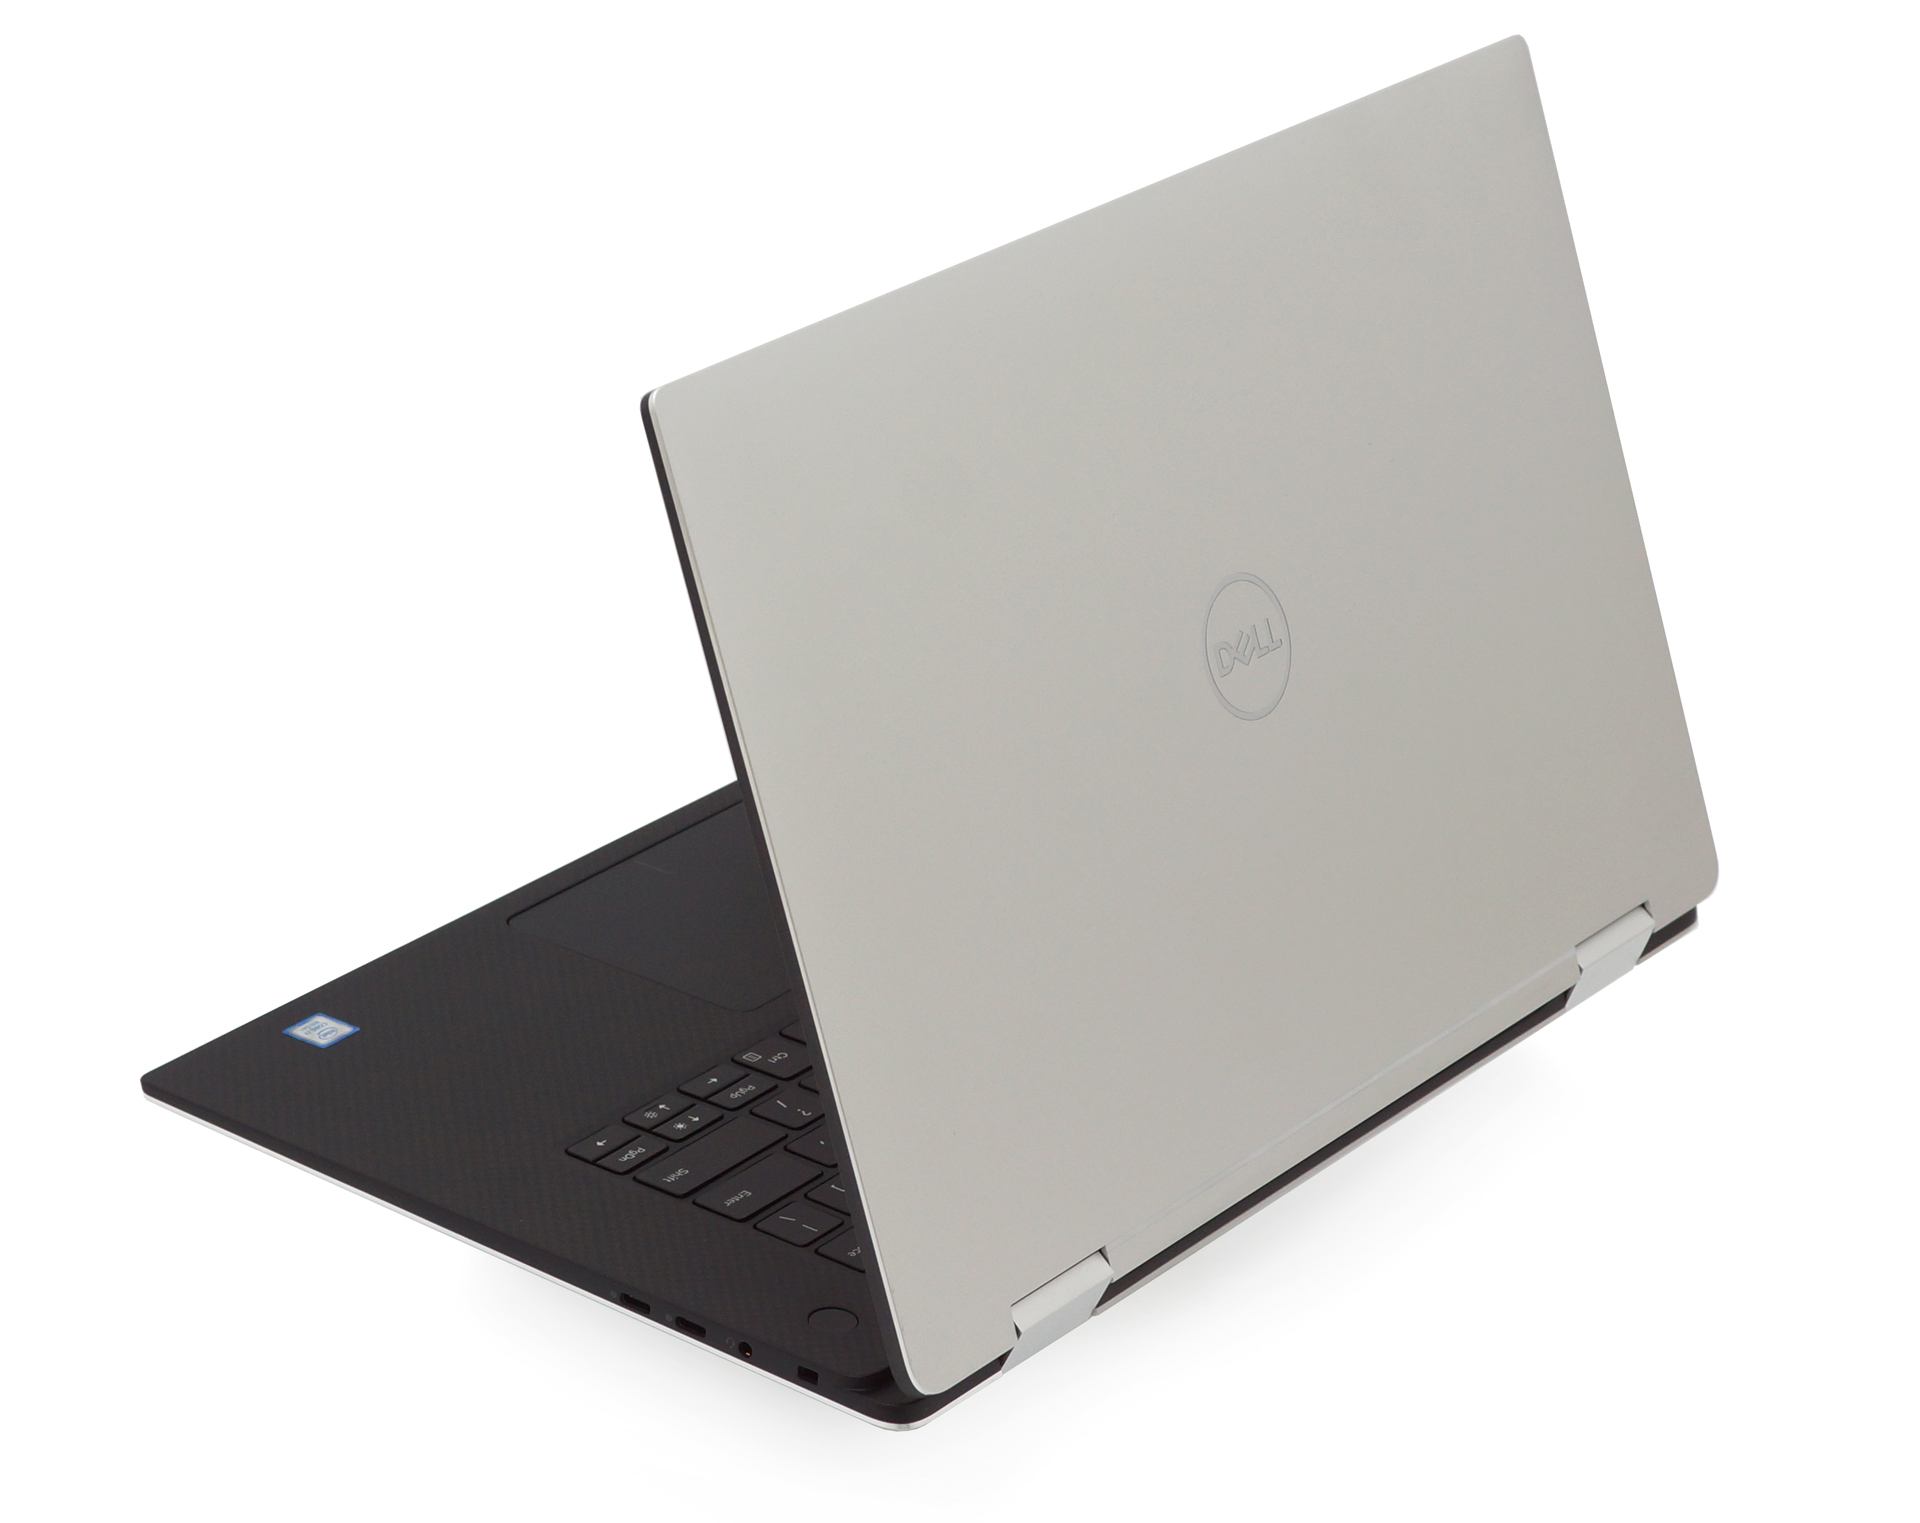 Dell XPS 15 9575 2-in-1 review – high-end workstation